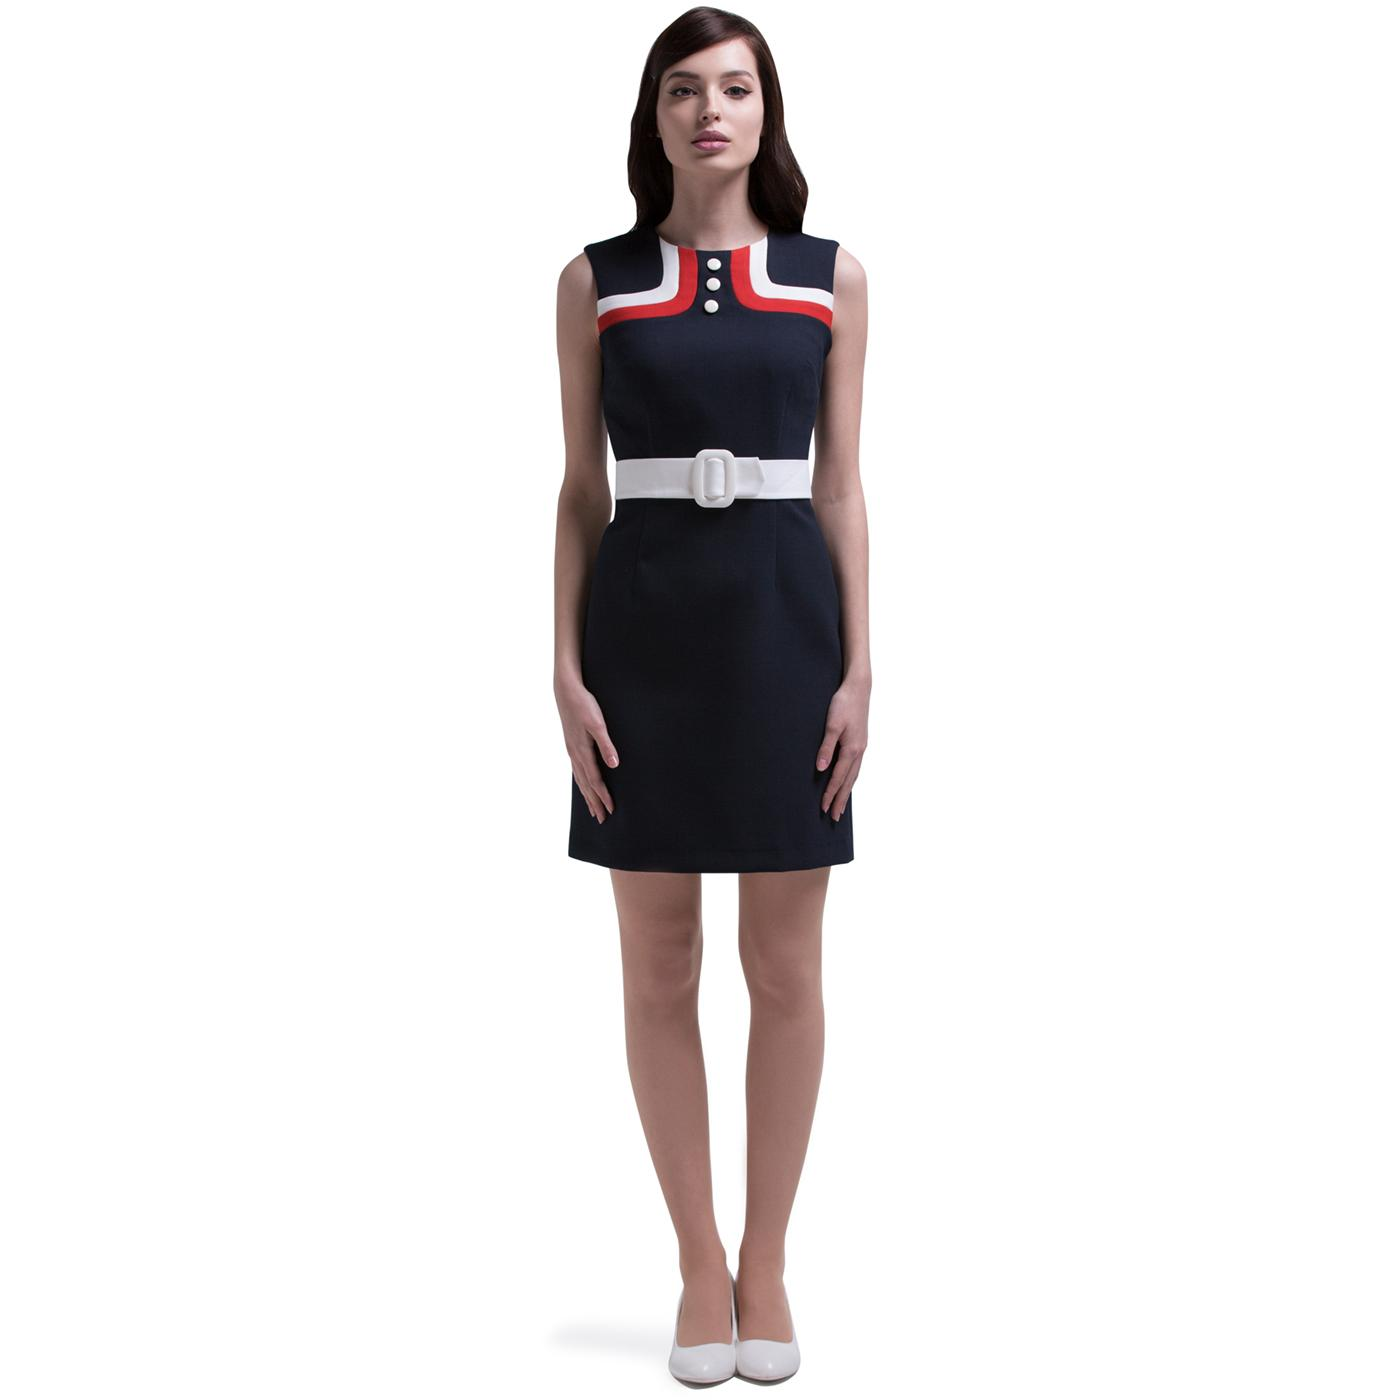 MARMALADE Retro 60s Mod Airline Dress in Navy